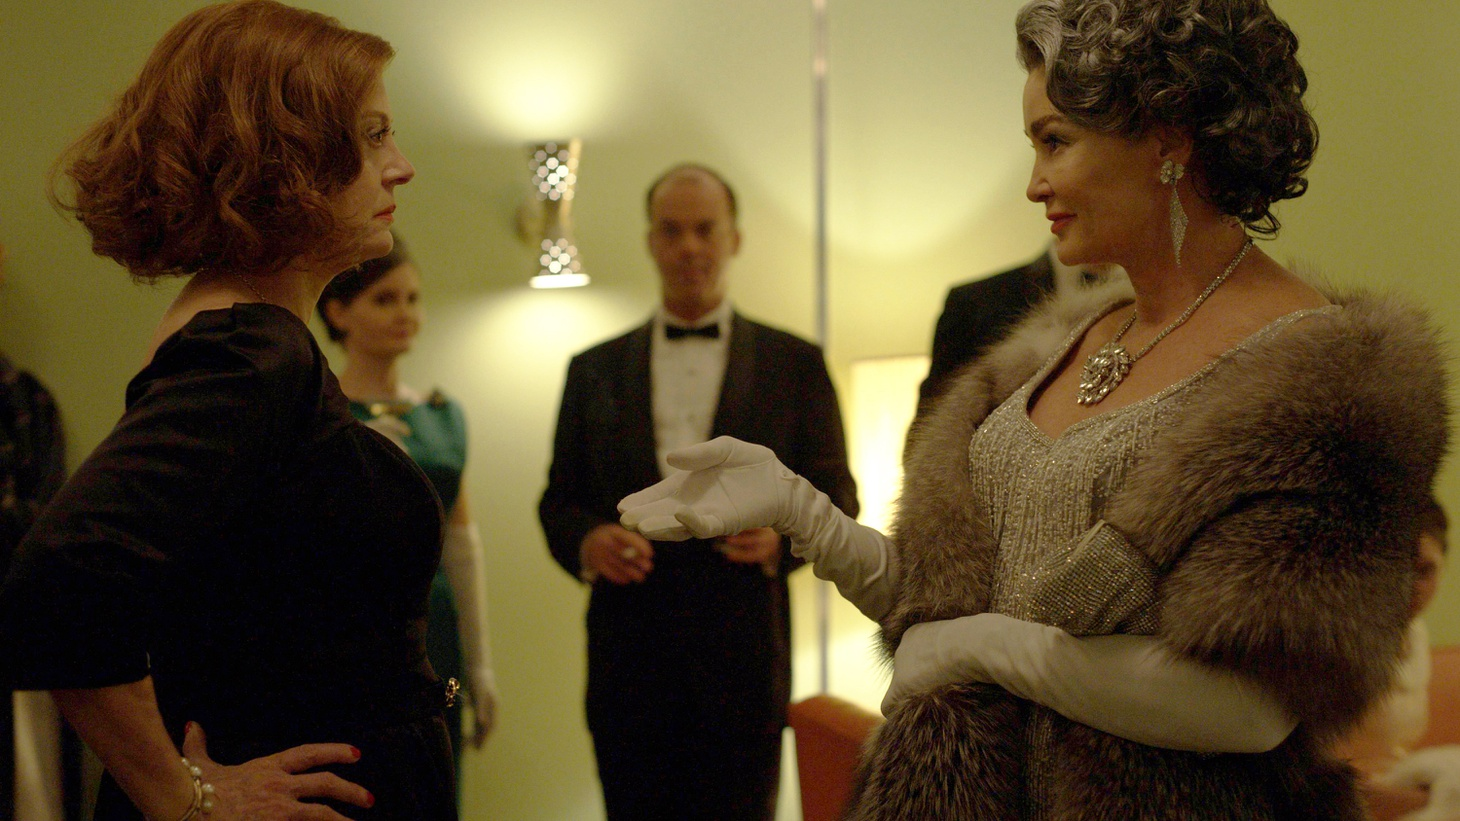 Ryan Murphy oversees a small TV empire on FX, with series including American Horror Story, American Crime Story and his latest effort, Feud. The first cycle of that show focuses on the rivalry between movie icons Joan Crawford and Bette Davis. On all his shows, Murphy now has a strict rule: at least half of the directors and crew members must be women or minorities.